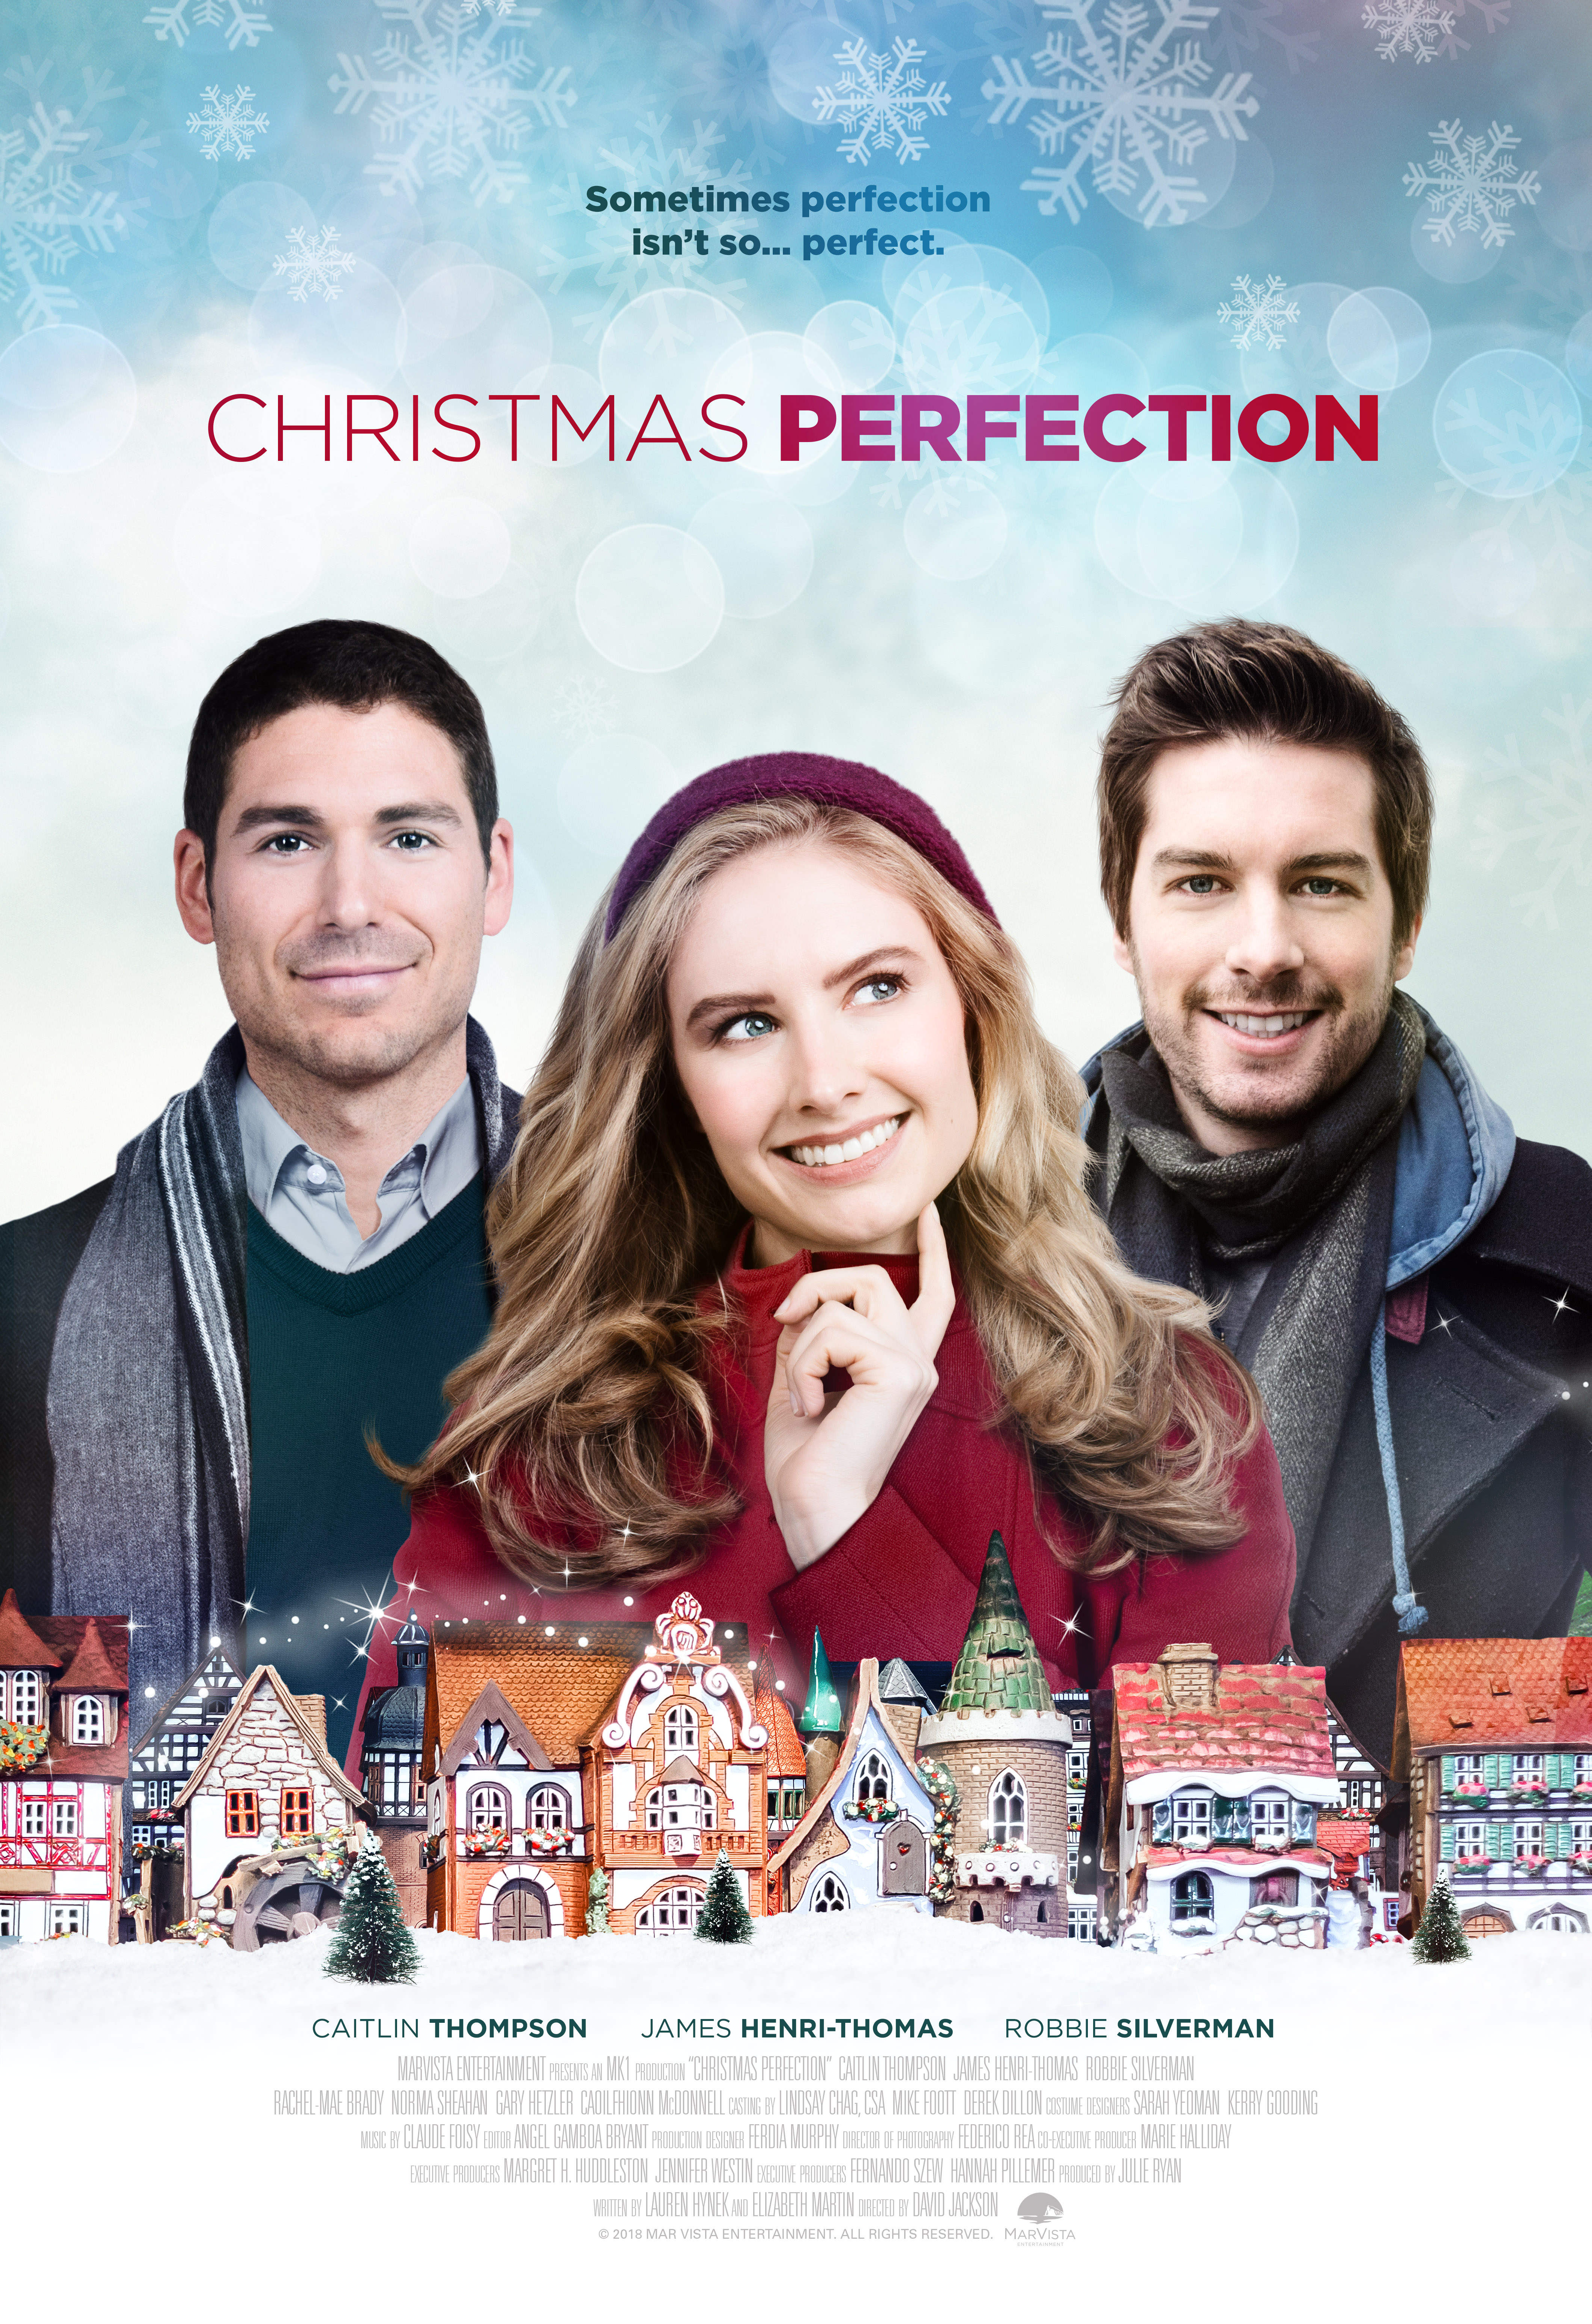 Christmas Harmony Movie.Christmas Perfection Tv Movie 2018 Imdb